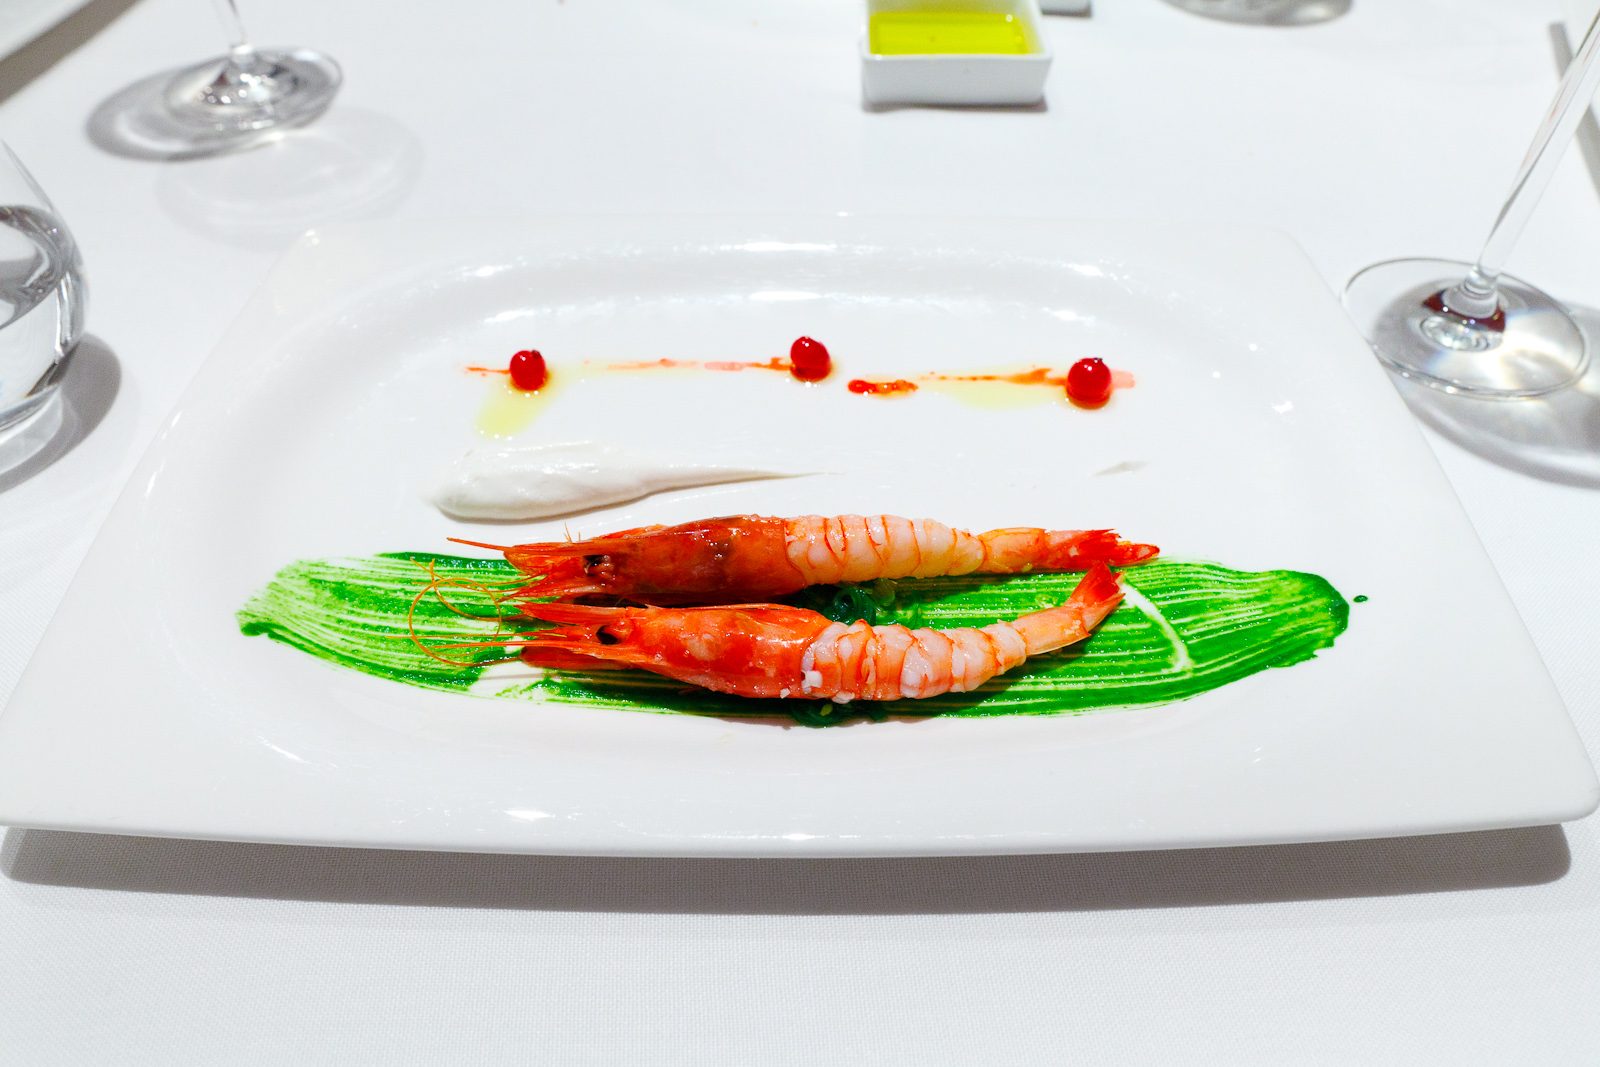 Hisop, Spain - King prawns with almonds and tarragon